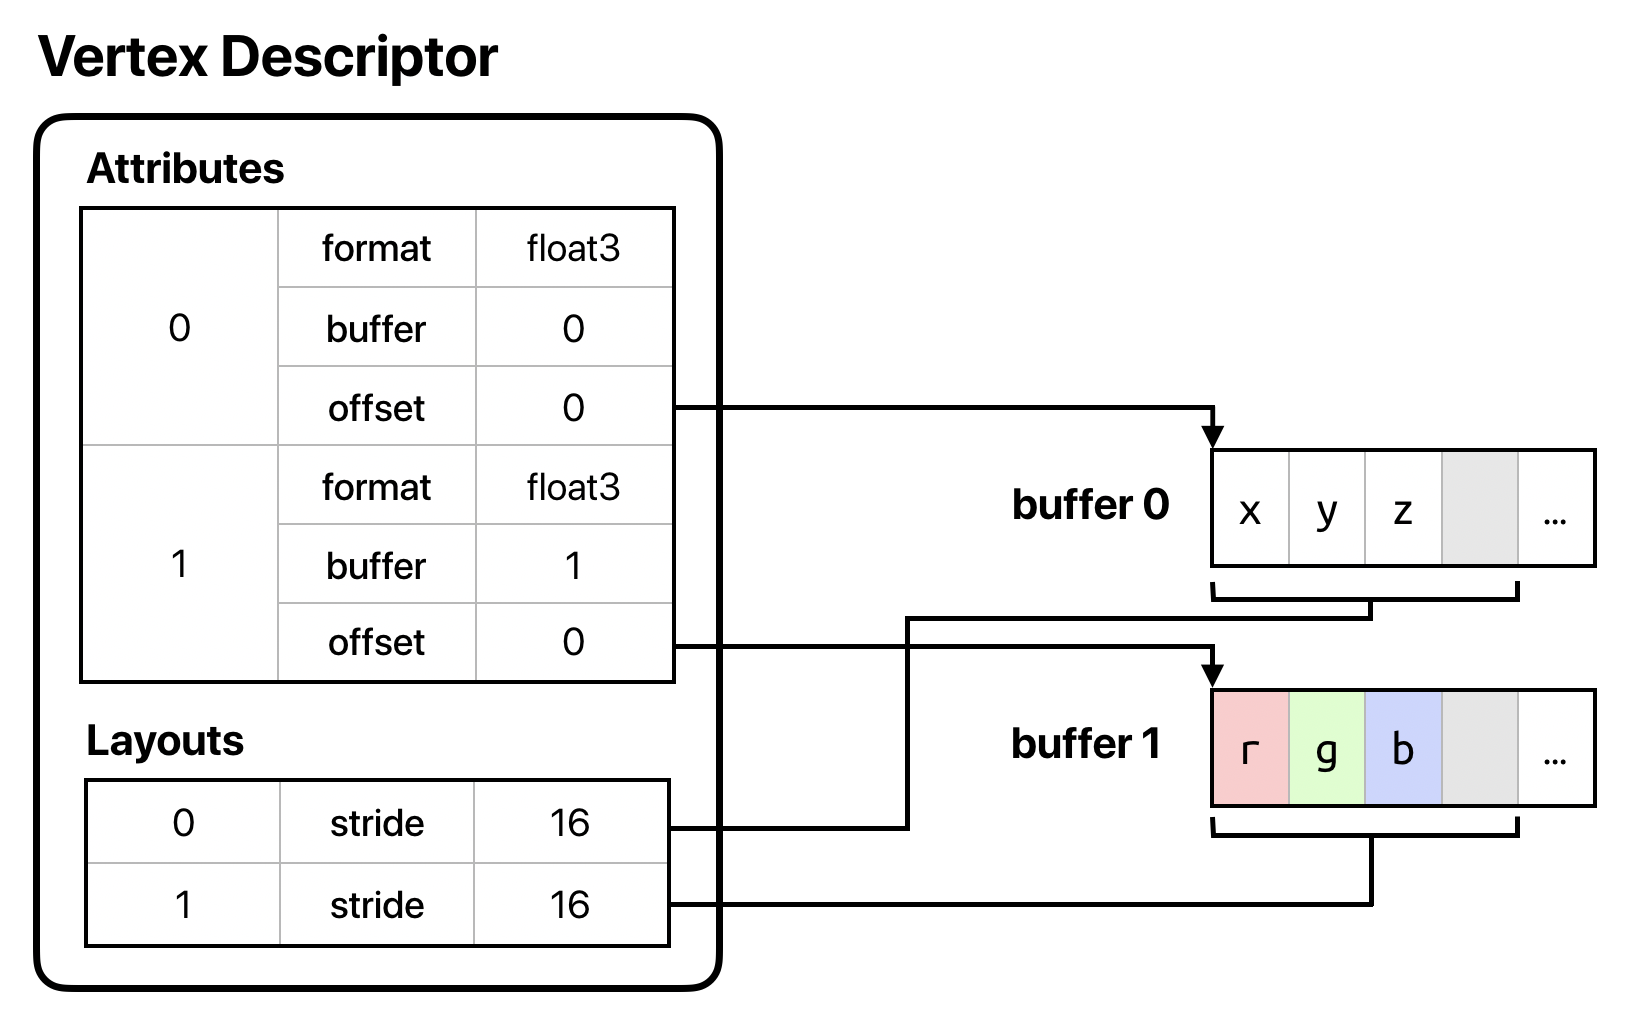 Figure illustrating non-interleaved attributes in different buffers